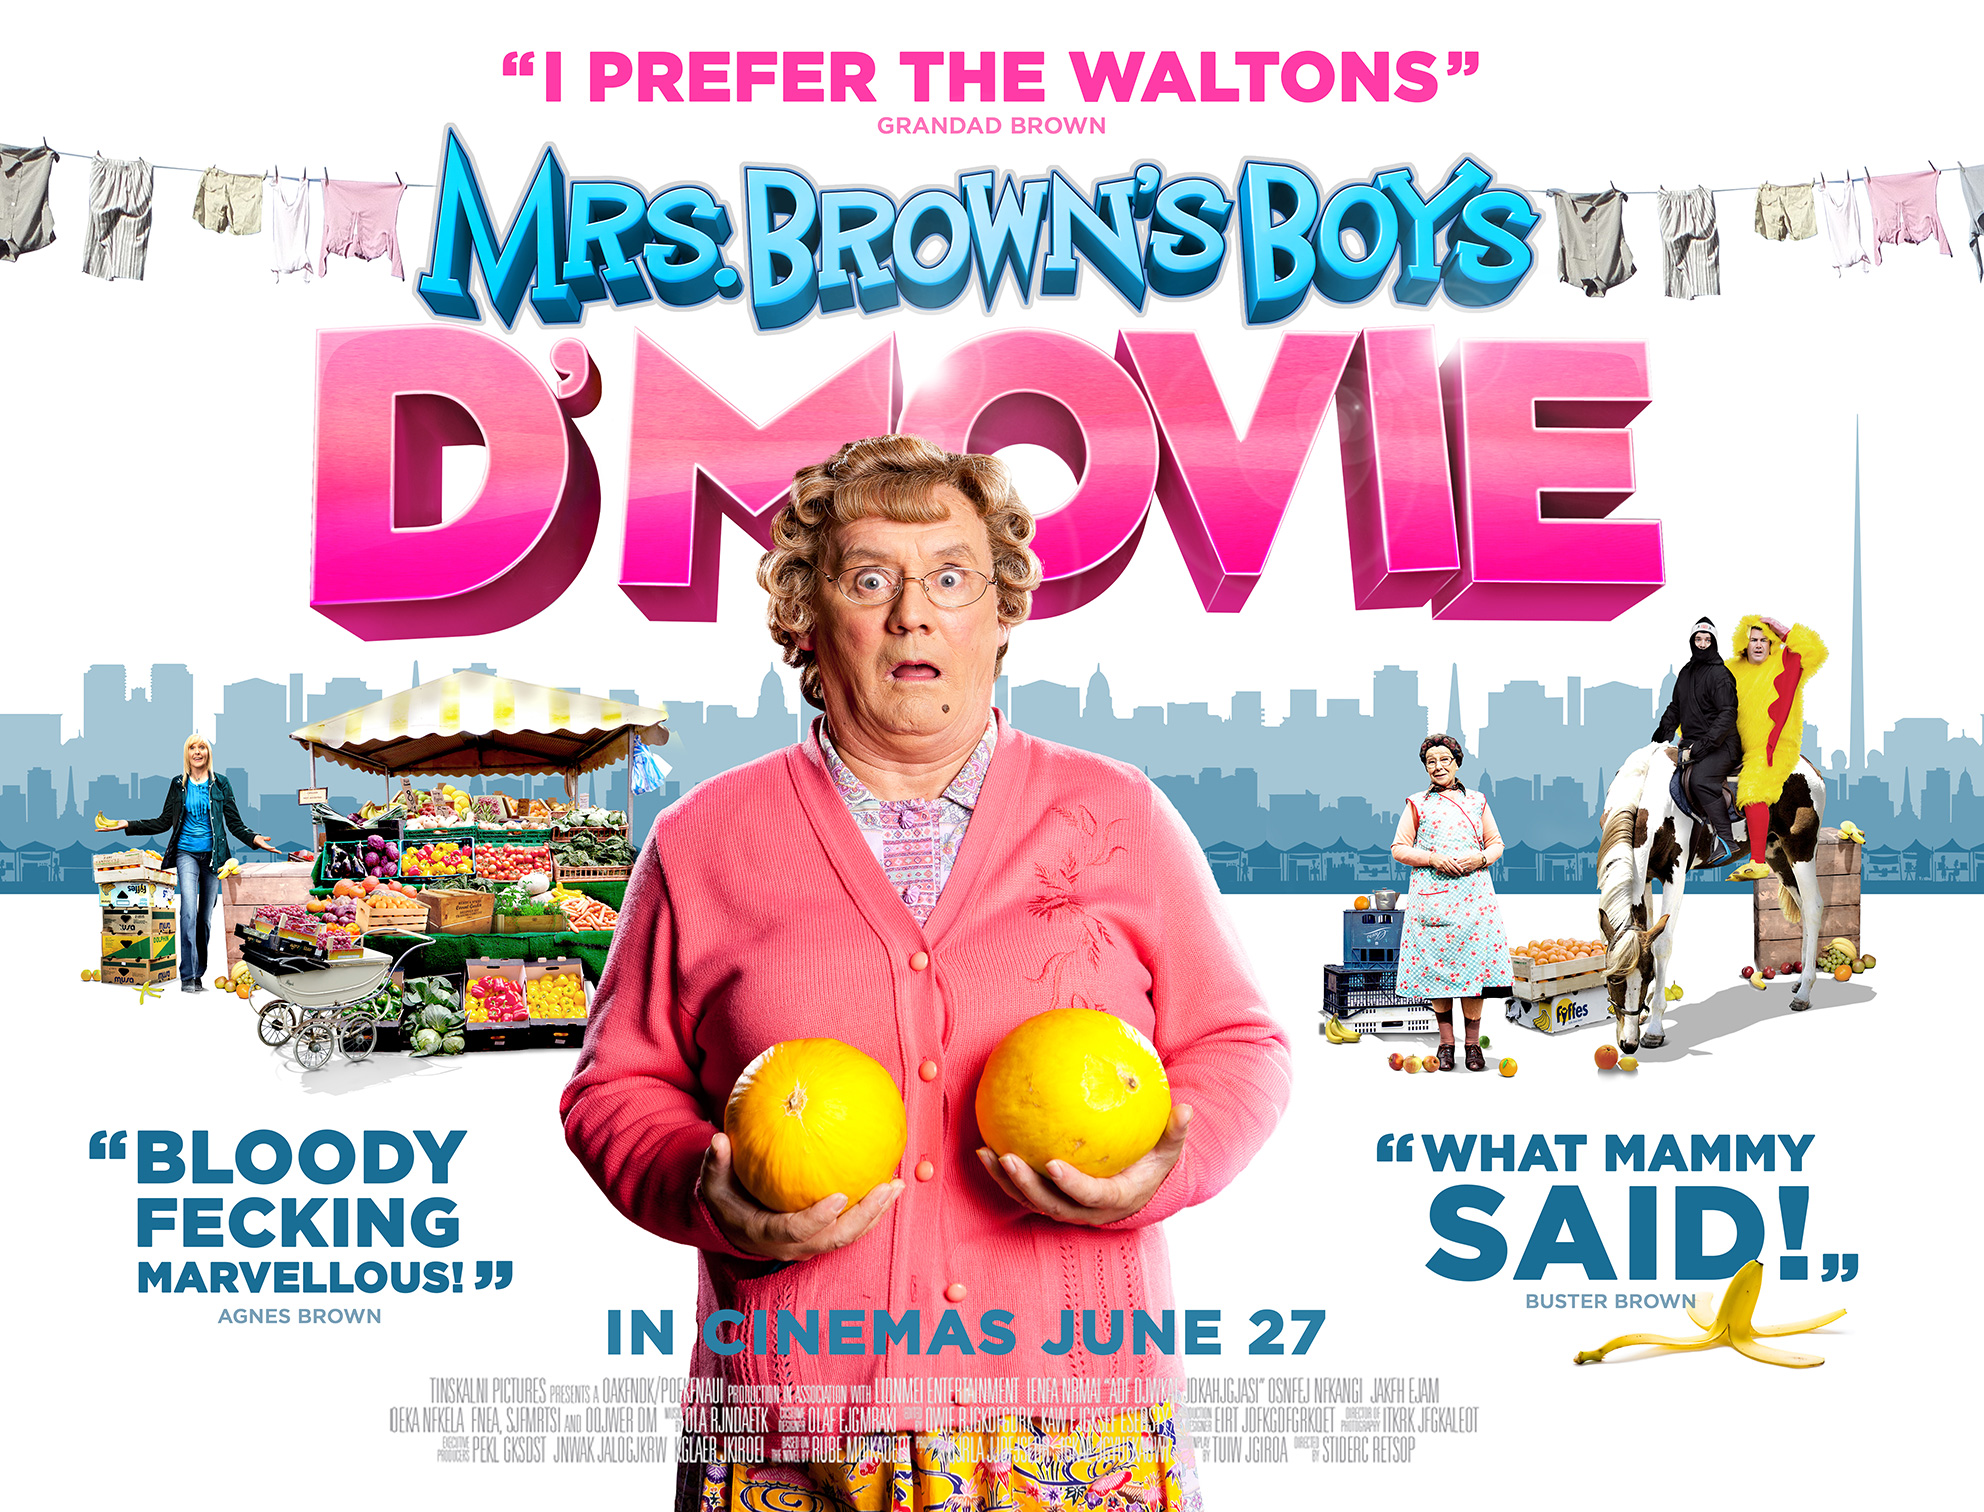 Mrs. Brown's Boys Route B